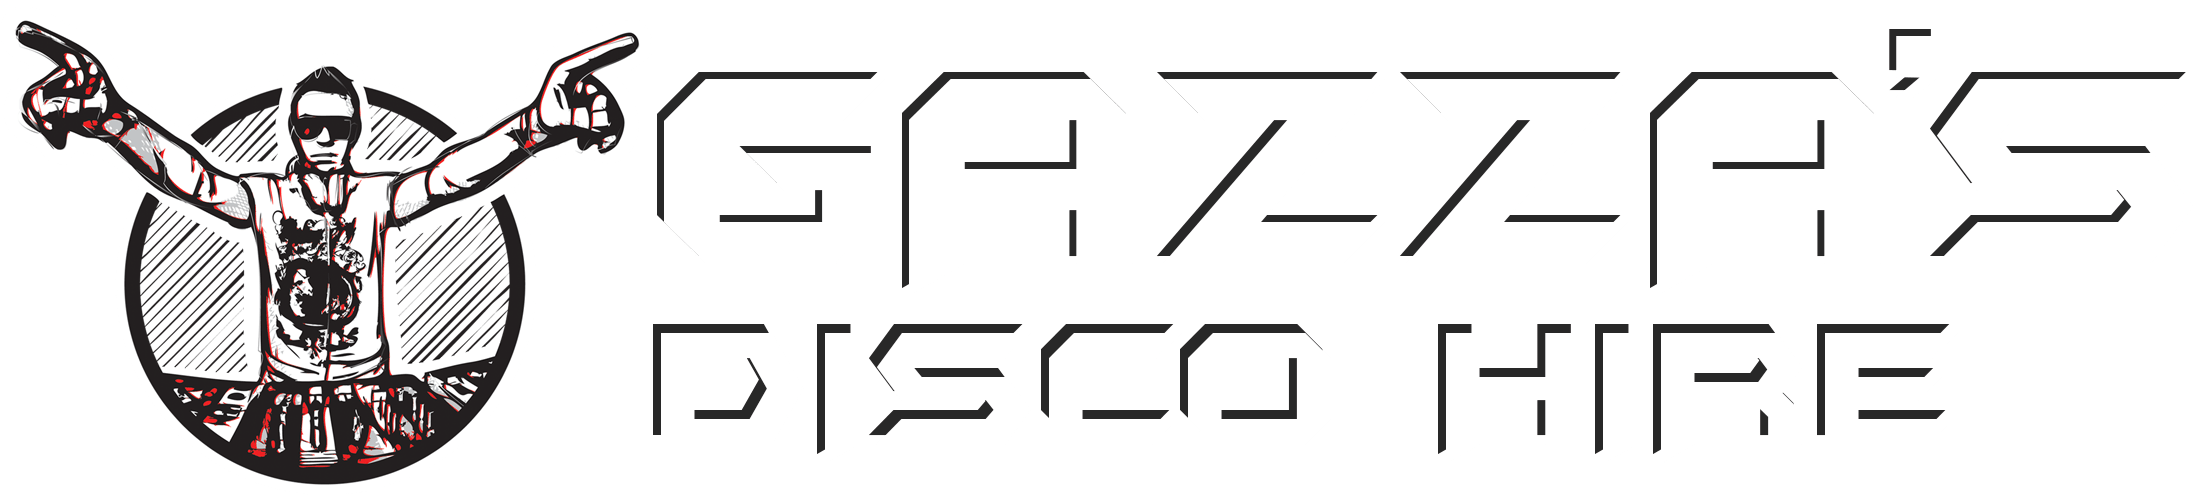 Gazza's Disco | Professional Disco Hire Service